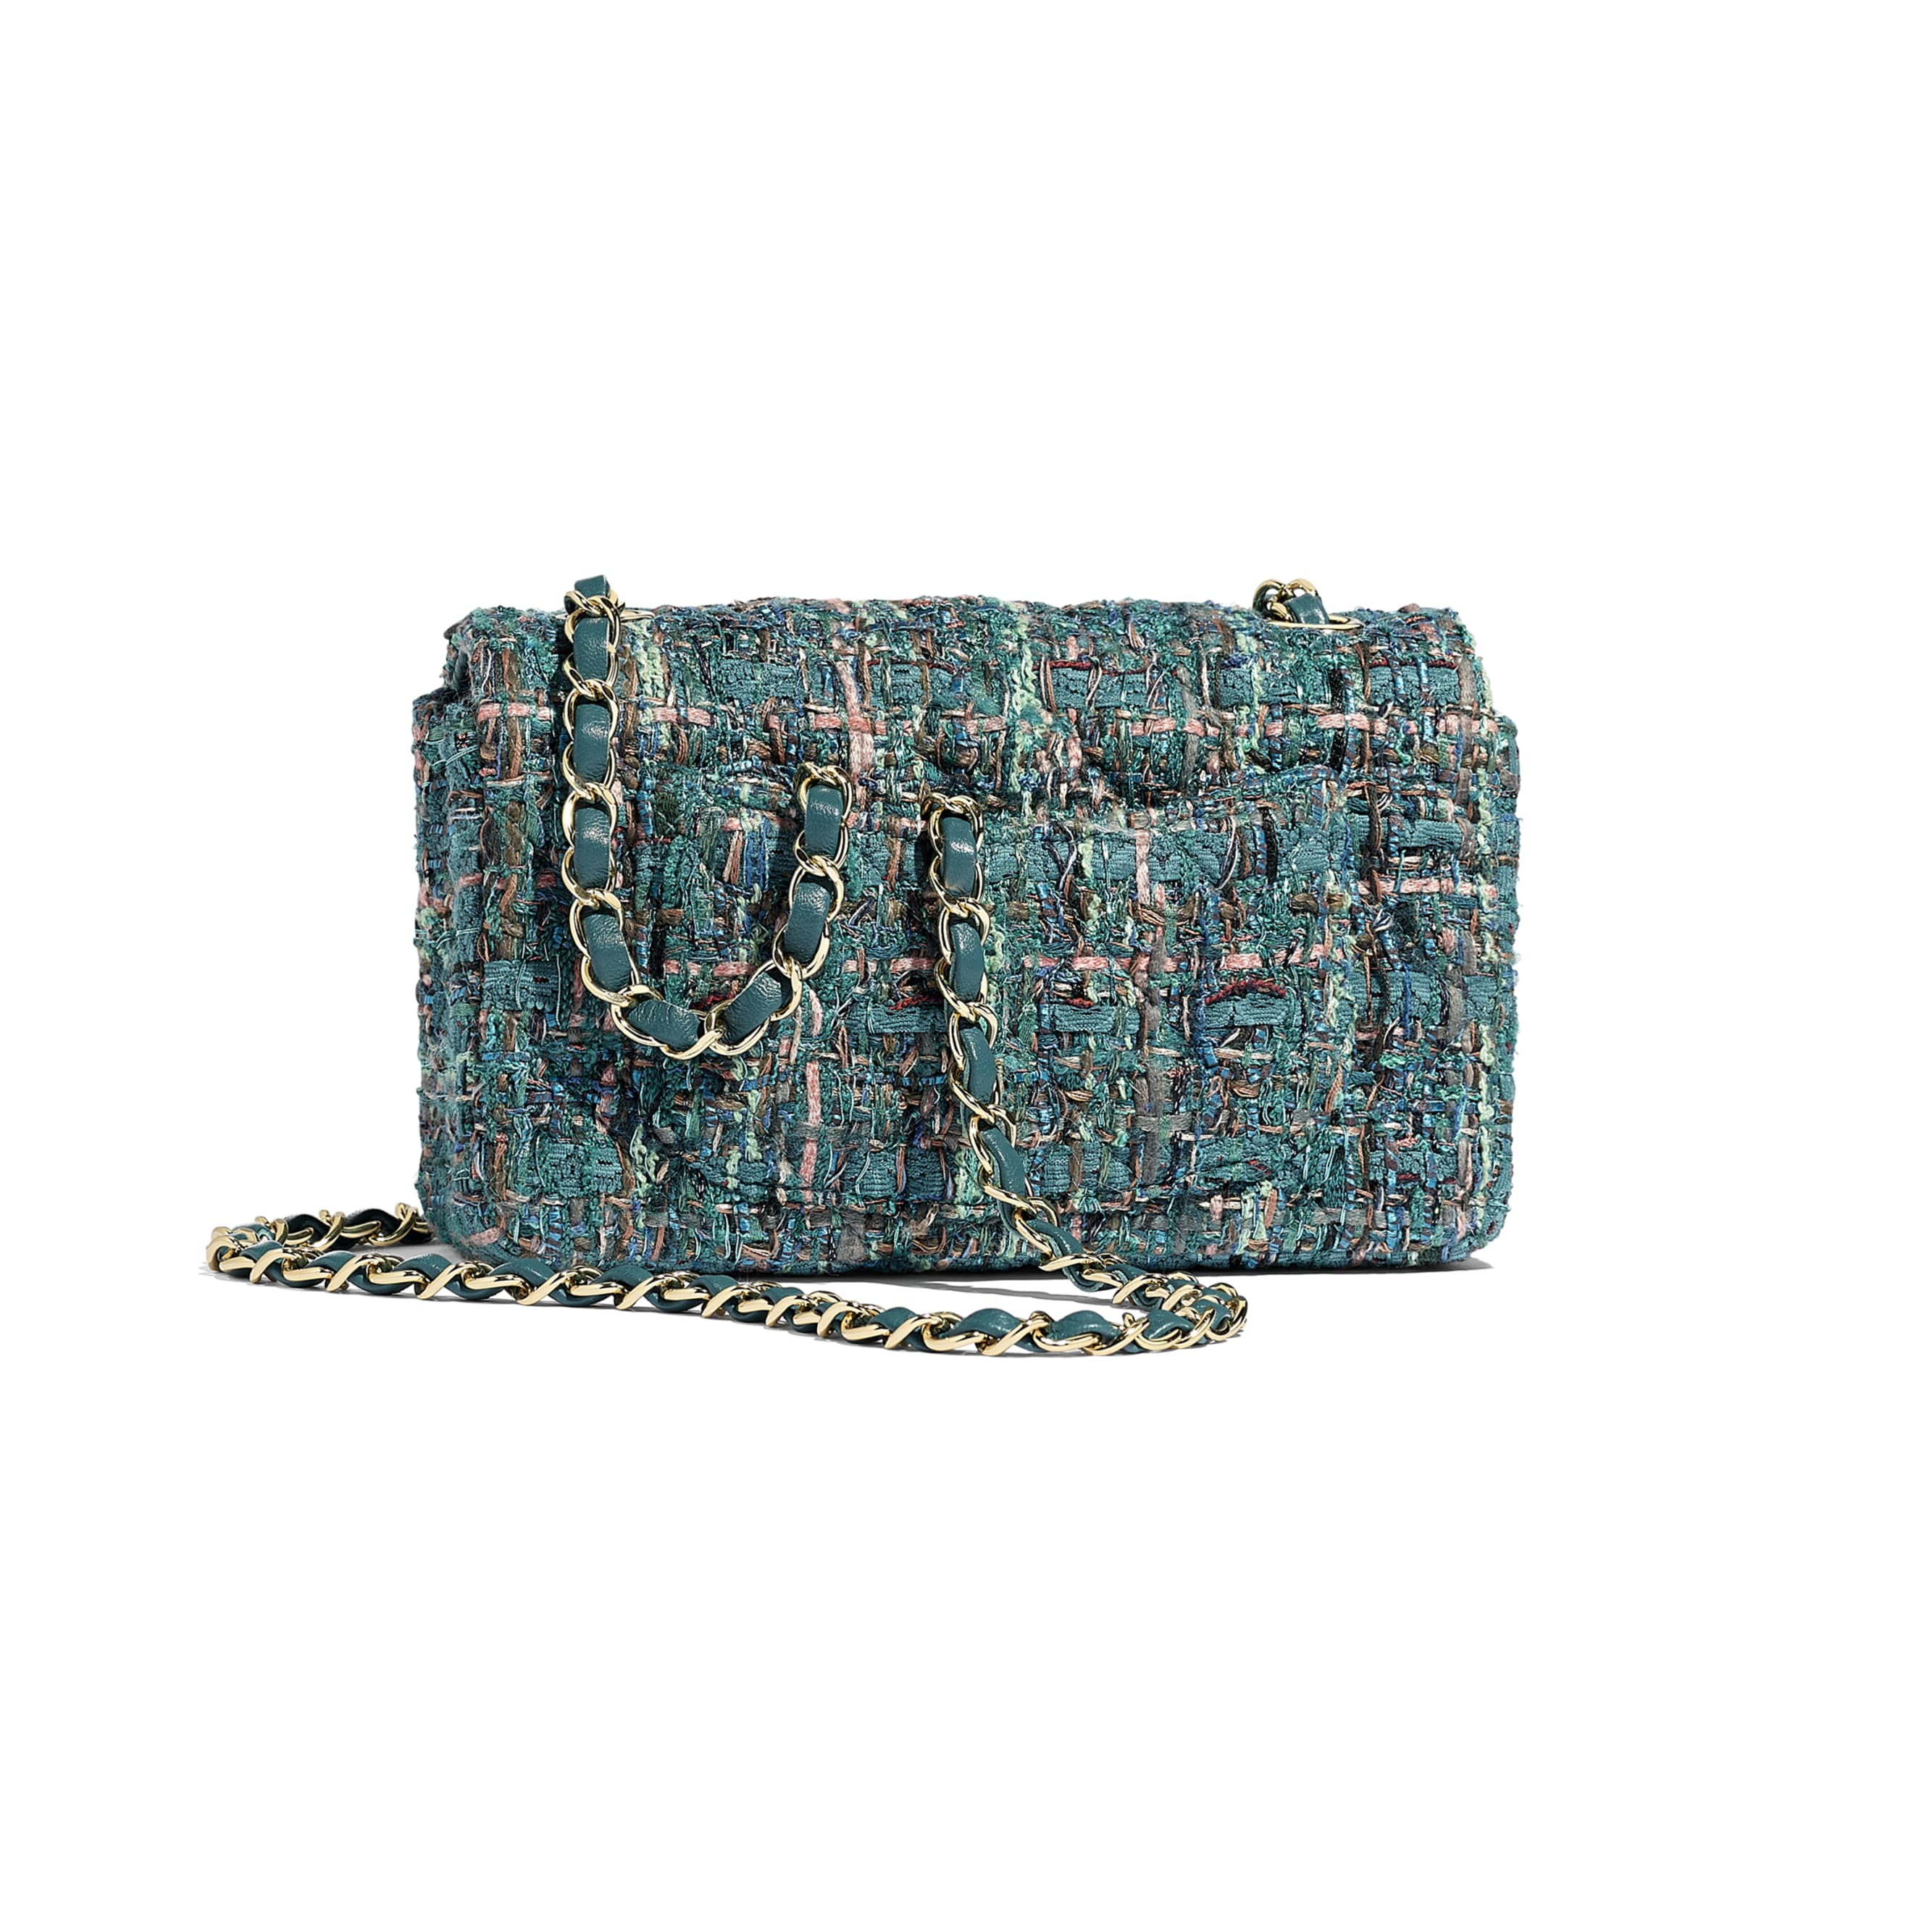 Mini Flap Bag - Turquoise - Tweed & Gold-Tone Metal - Alternative view - see standard sized version